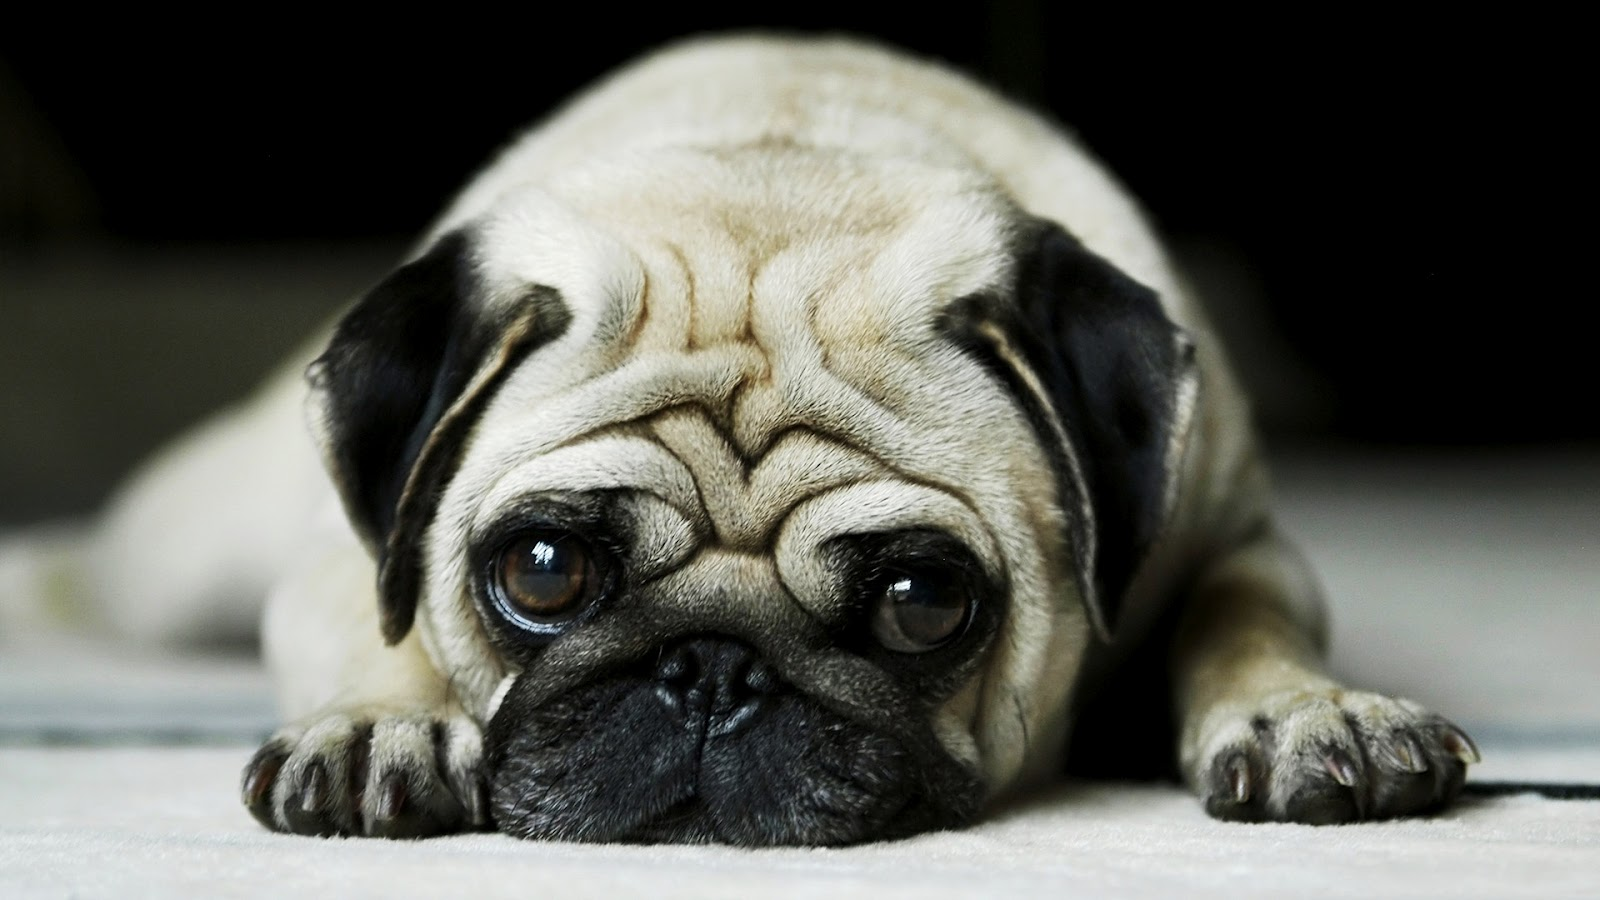 All Wallpapers Pug Dog Hd Wallpapers 1600x900